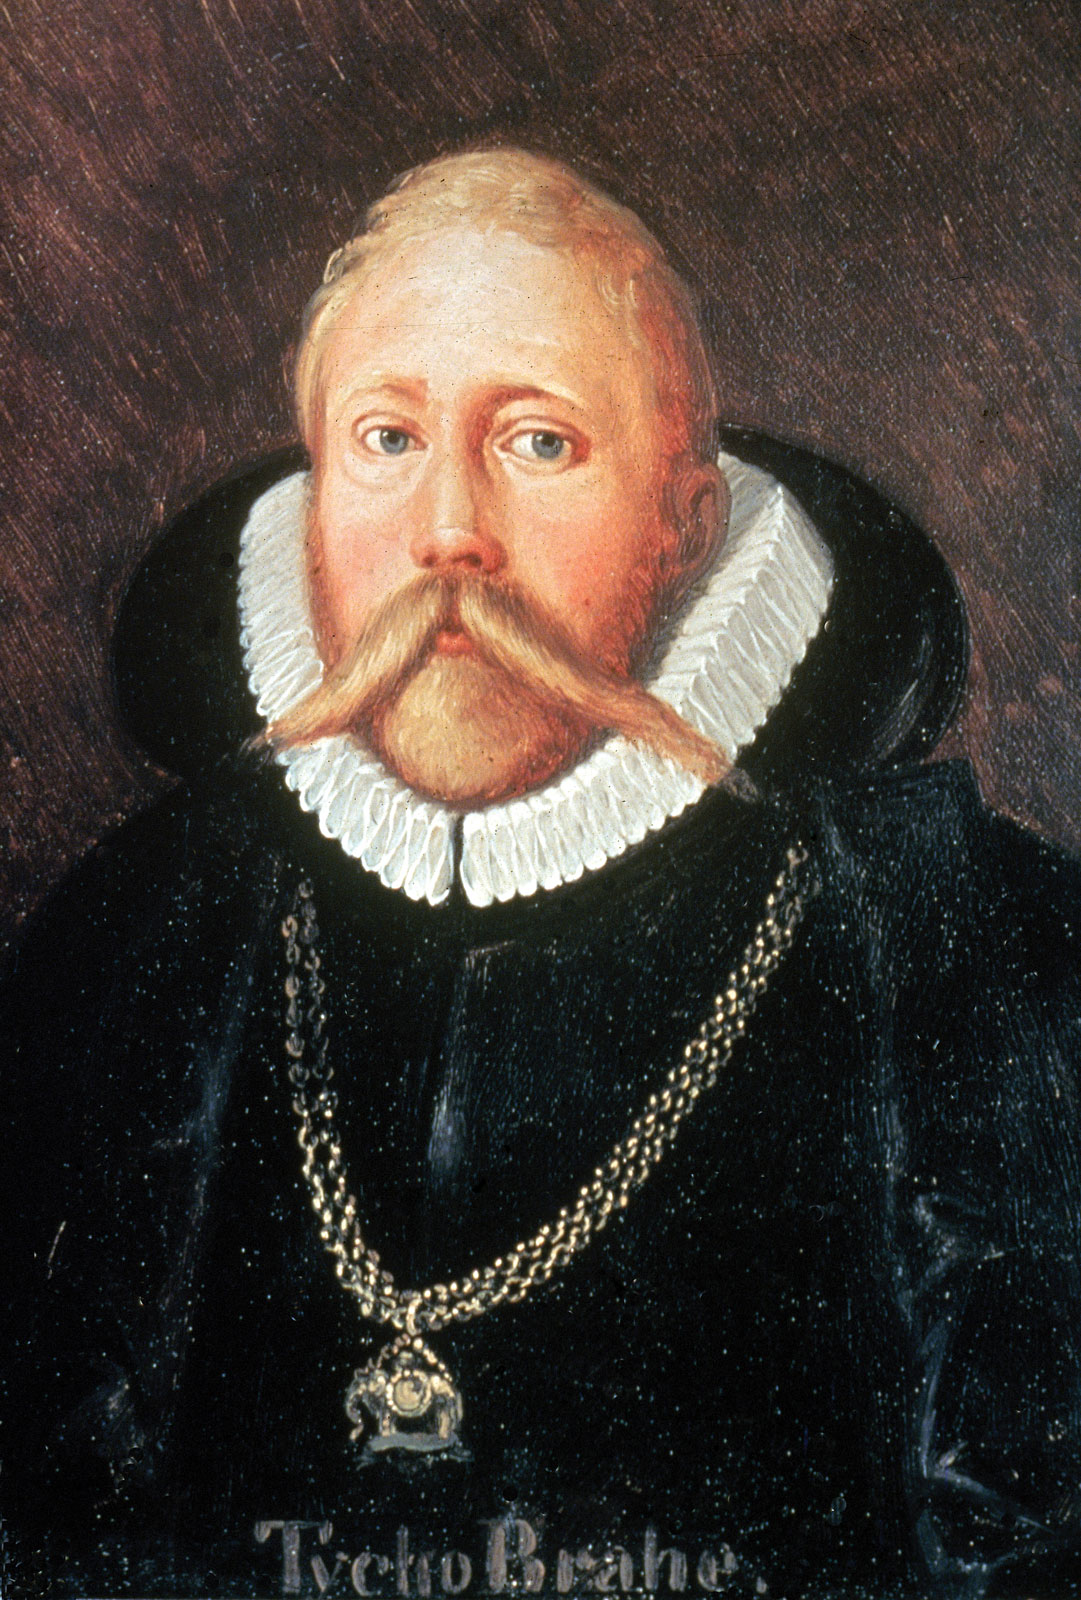 The astronomer Tycho Brahe